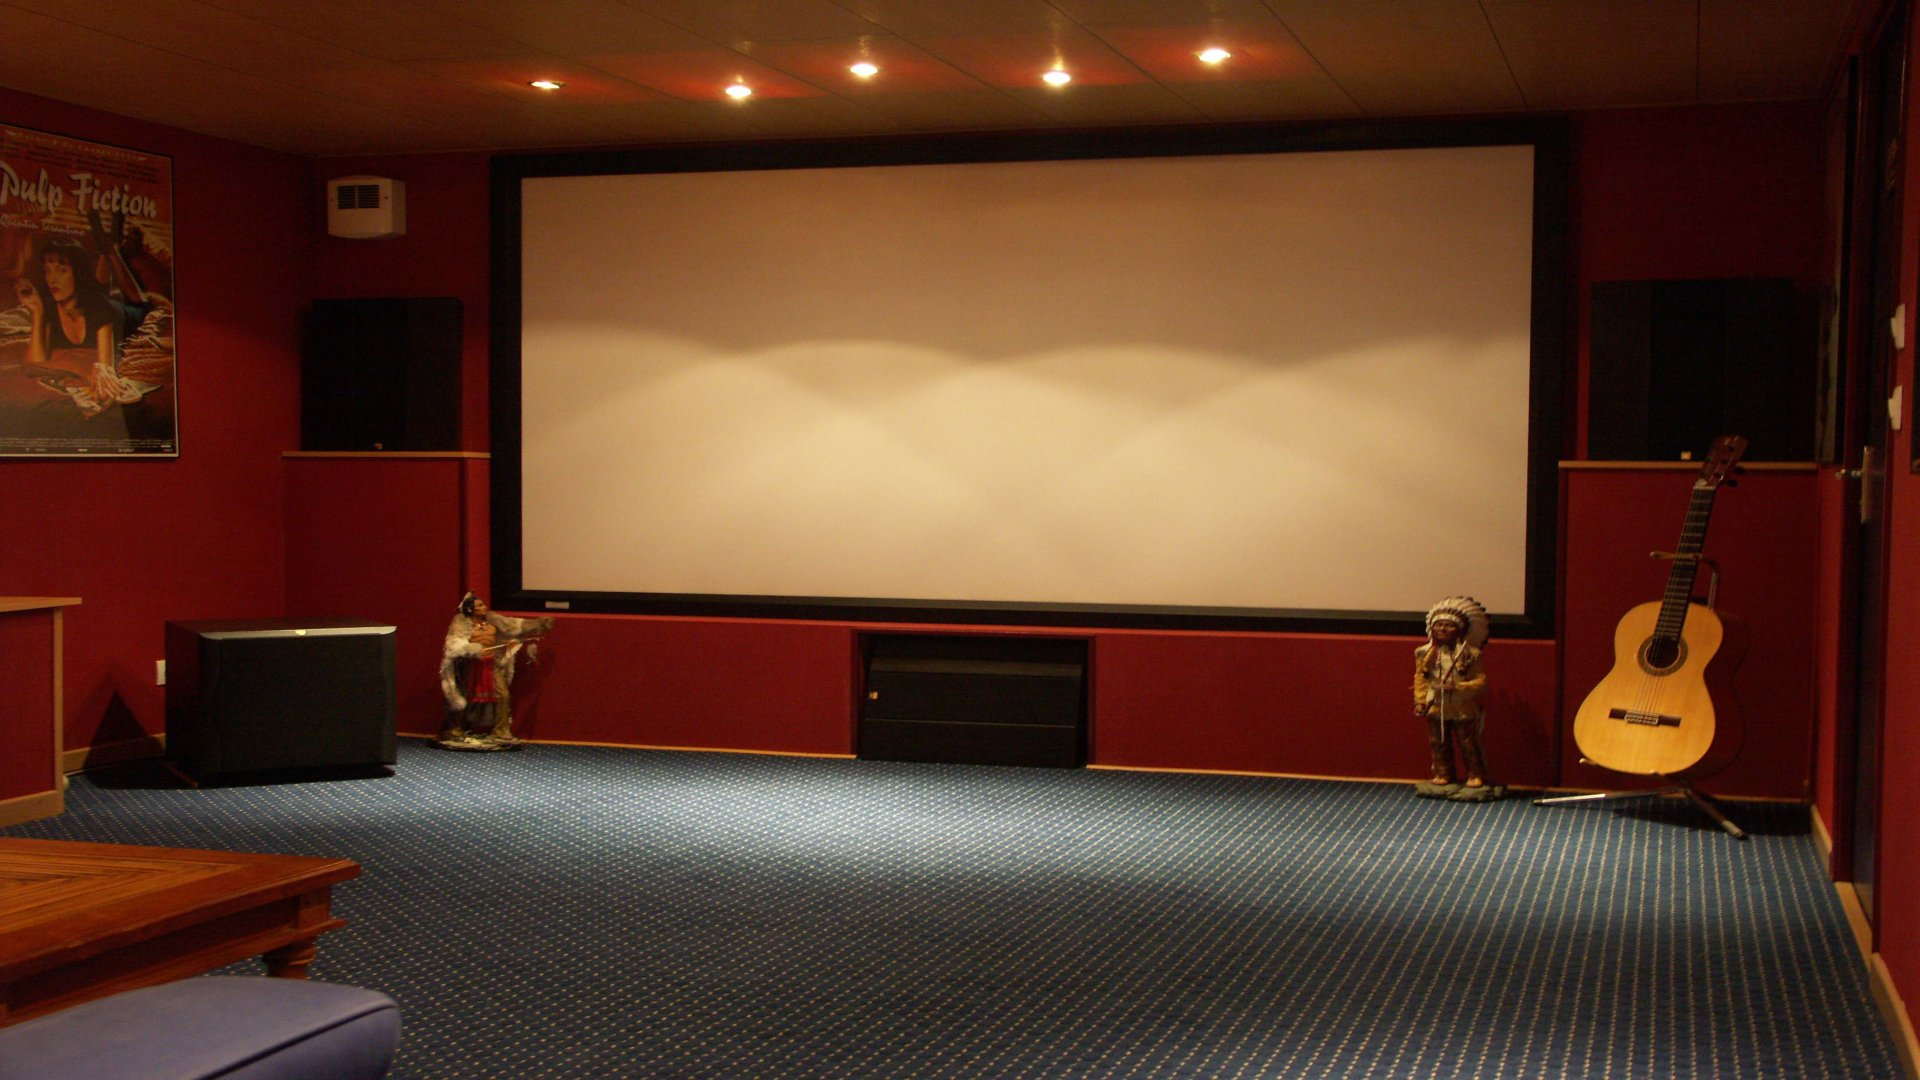 Home theater wallpaper wallpapersafari for Wallpaper home theater